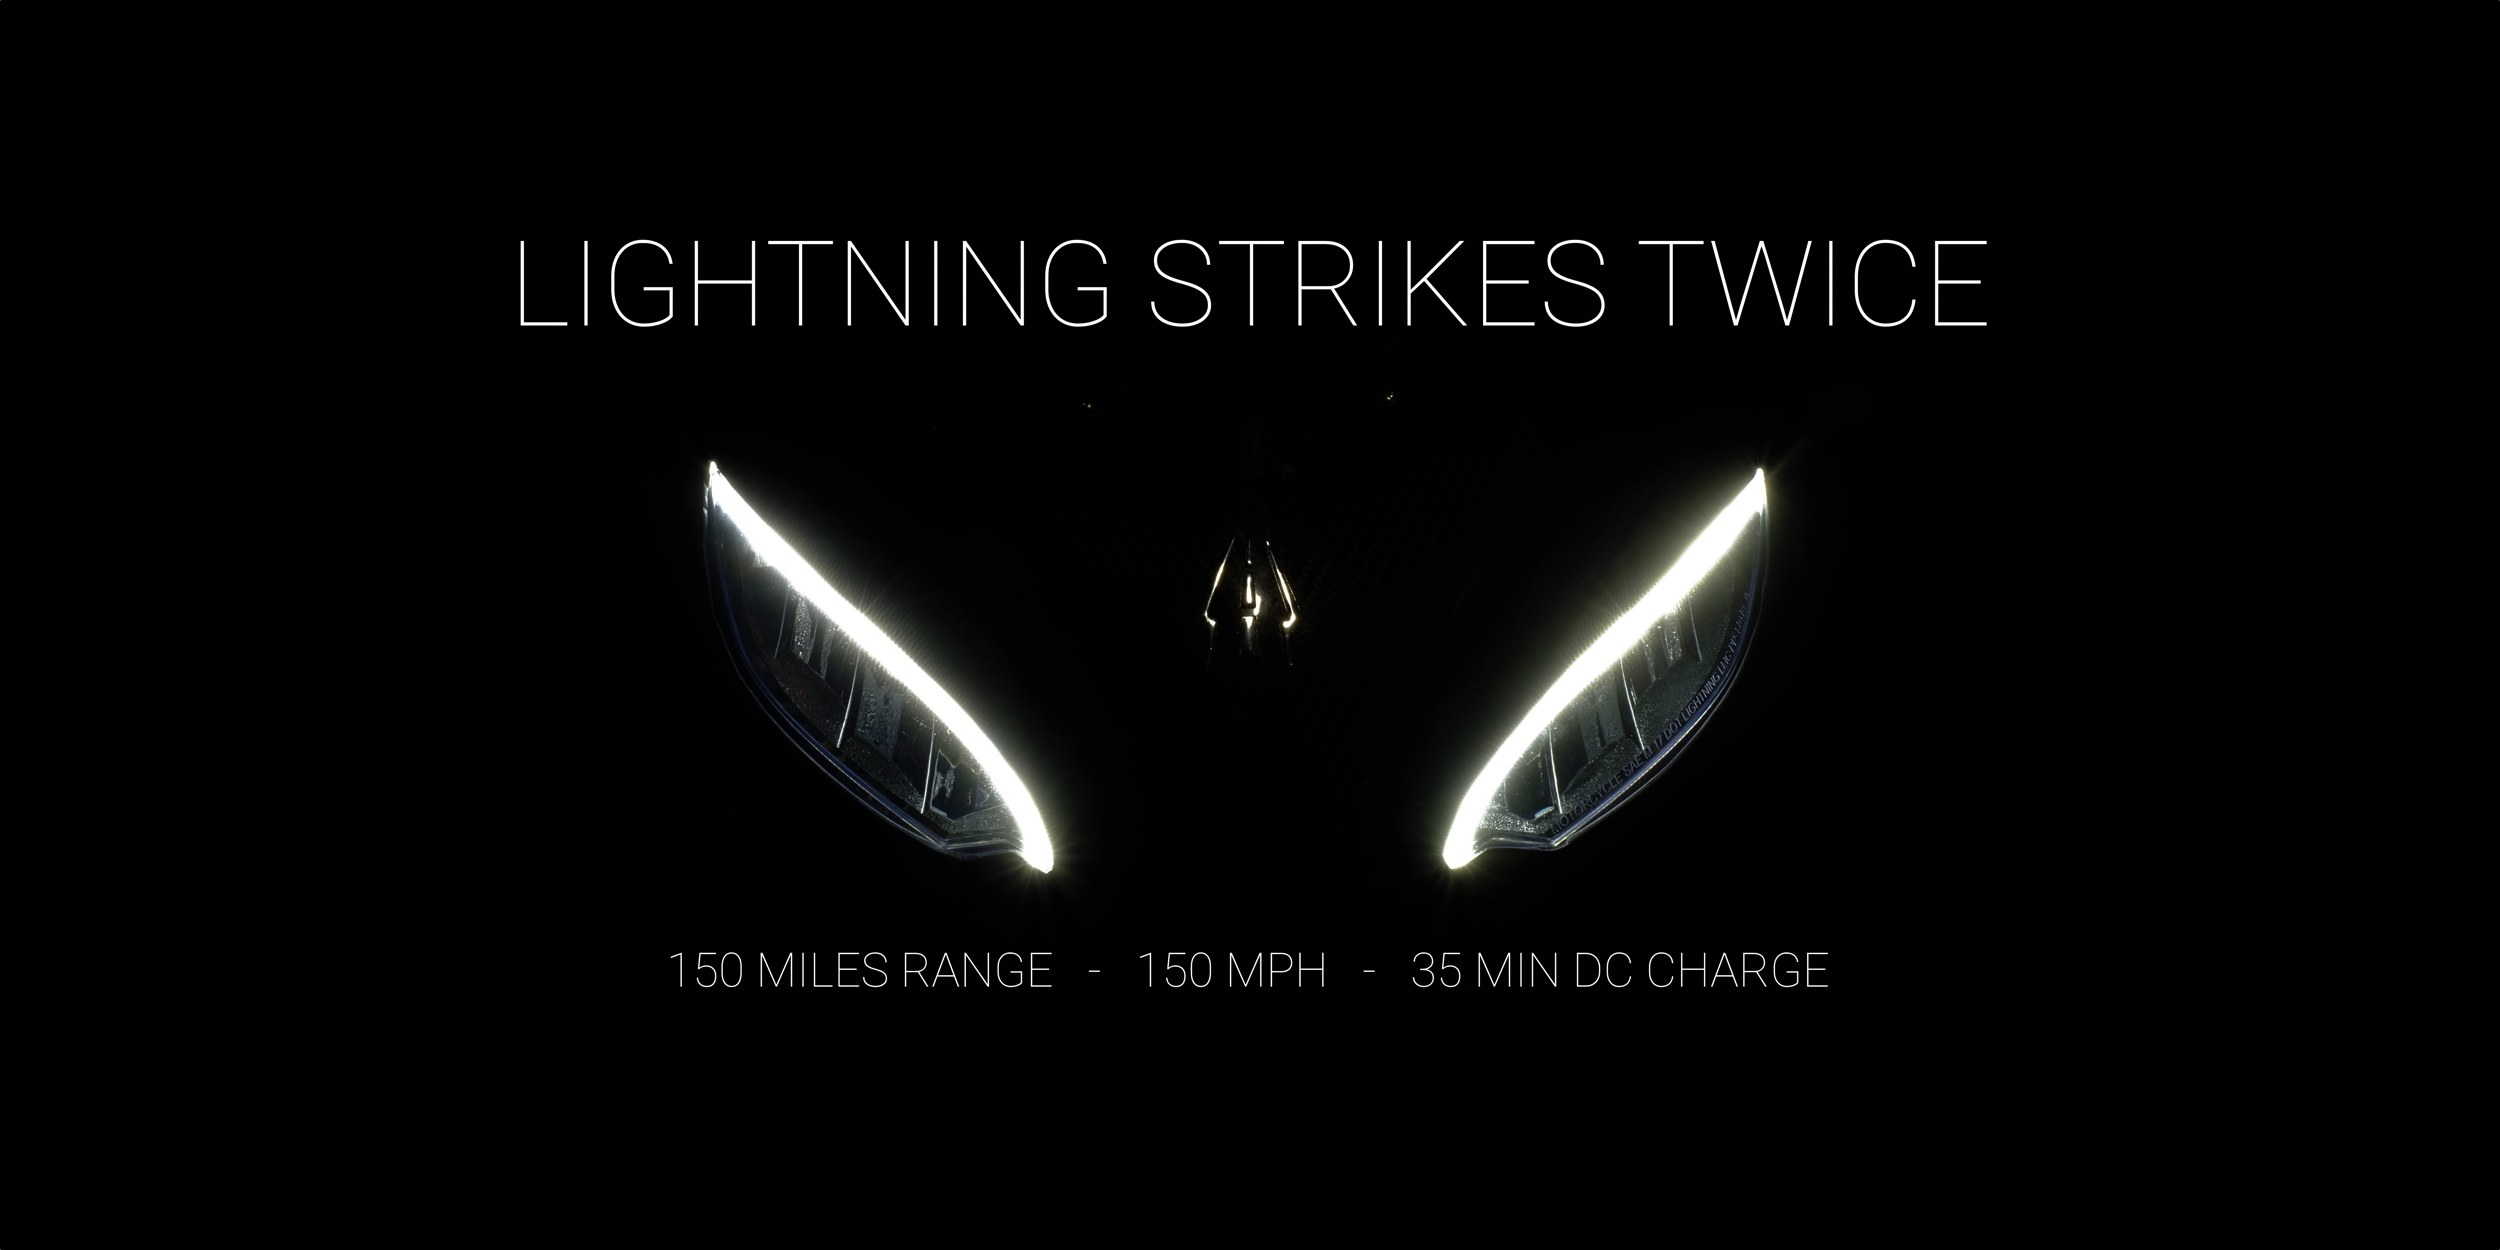 Lightning Strike electric motorcycle capable of charging on Level 1, 2 & 3